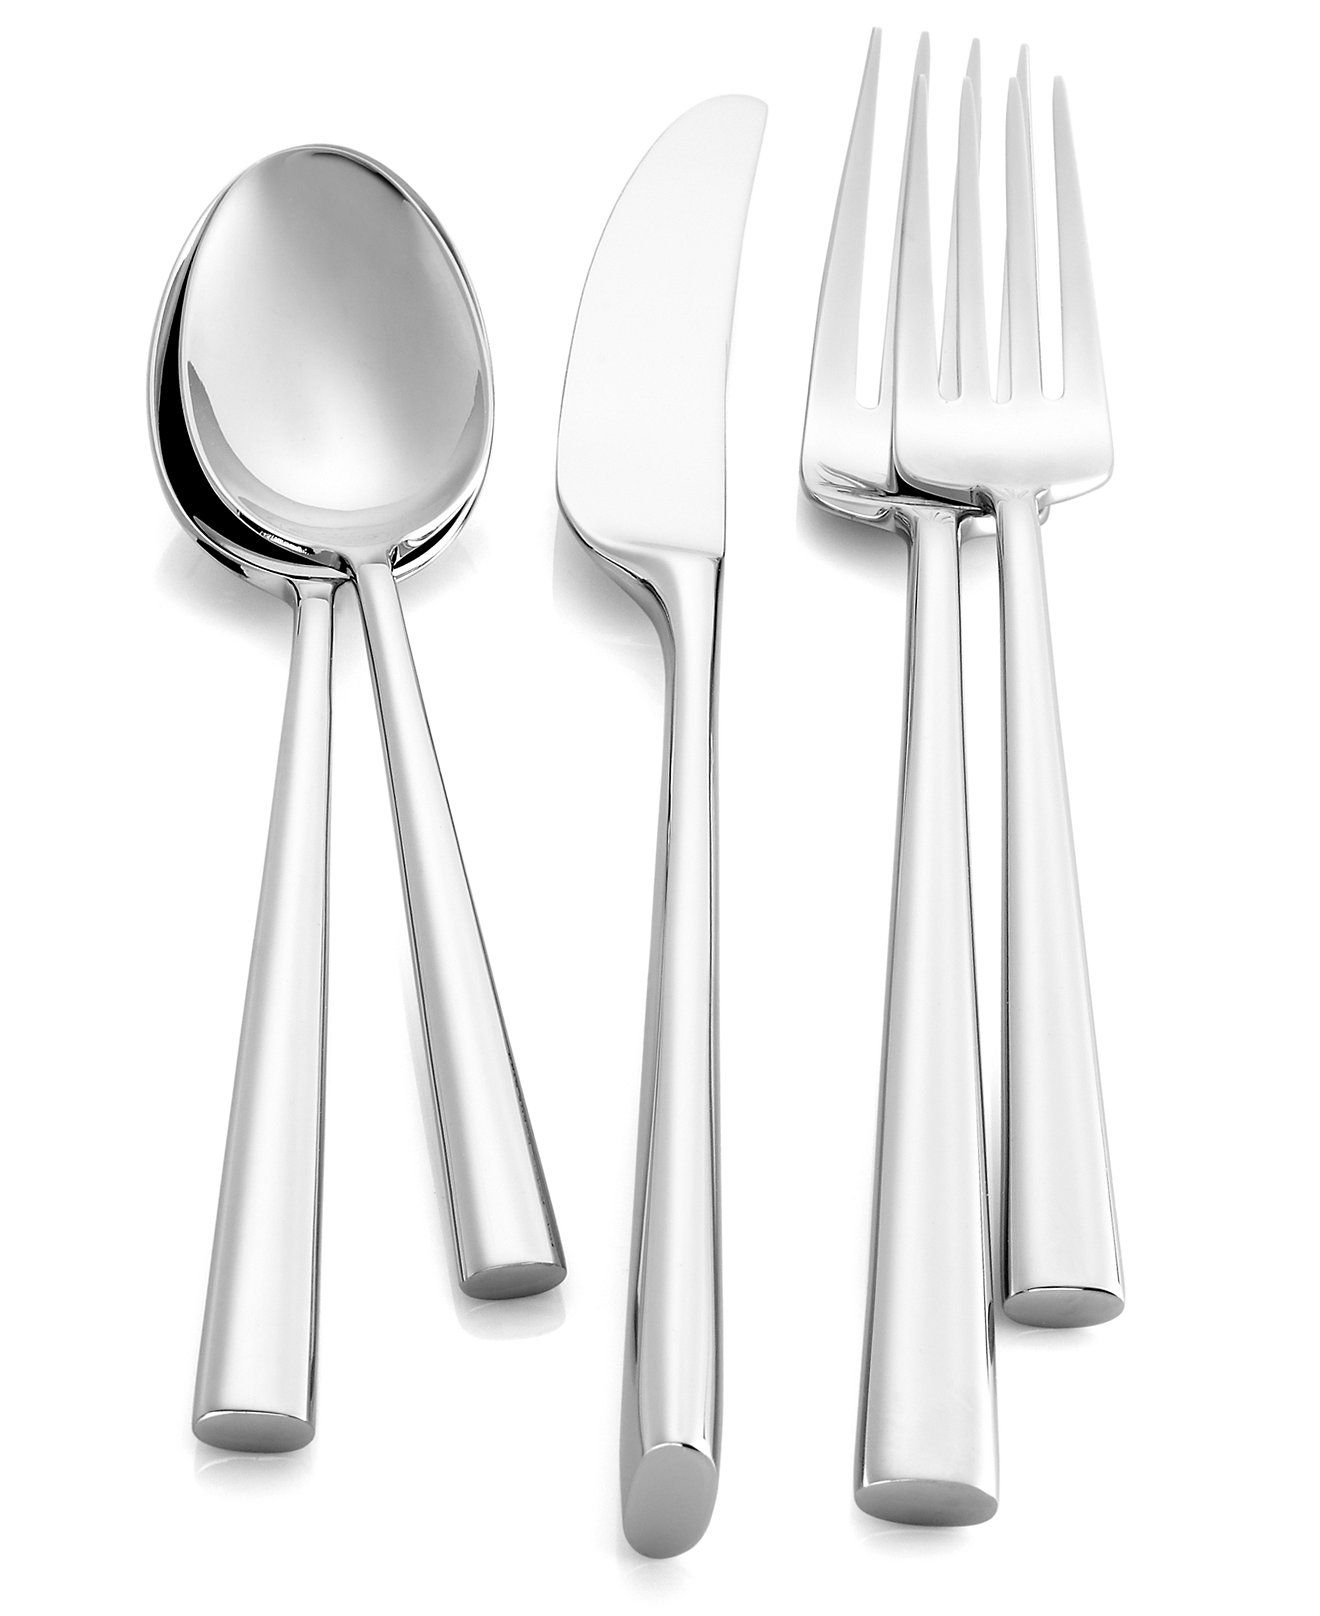 Malmo 5 Piece Place Setting Unique Utensils Modern